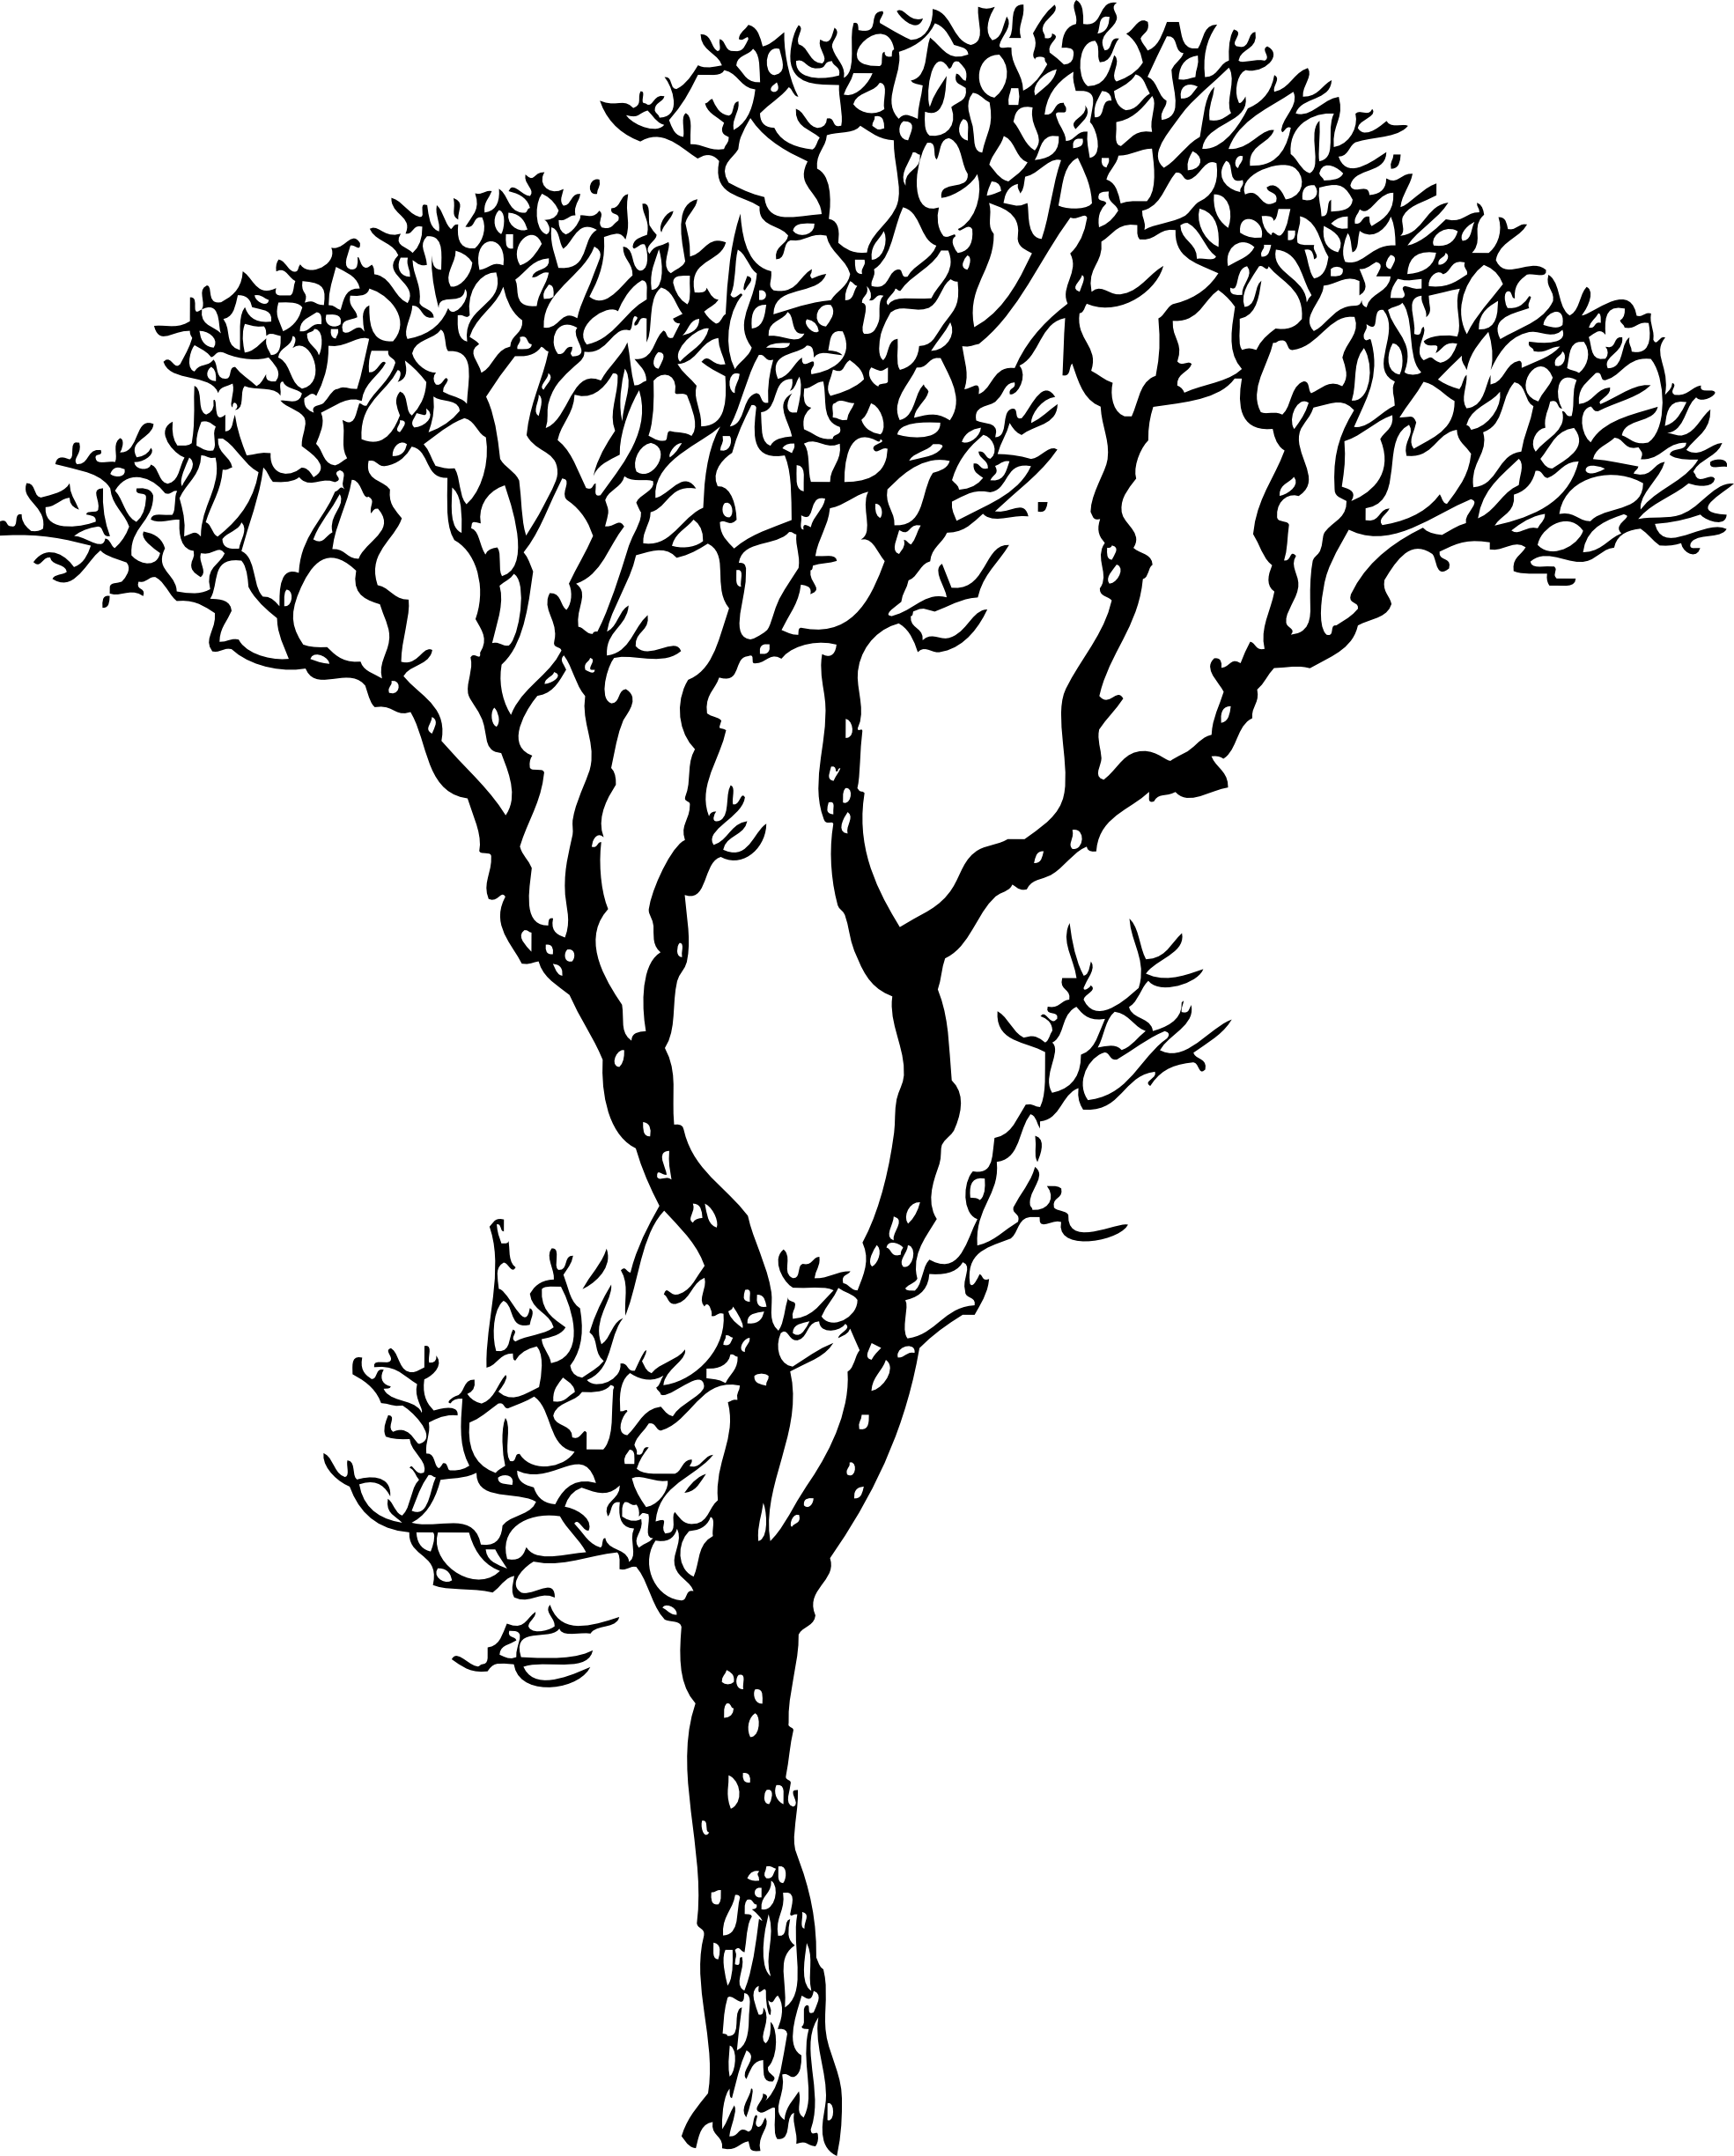 Bare Tree Black White Line Art Coloring Book Colouring Letters ... banner free library